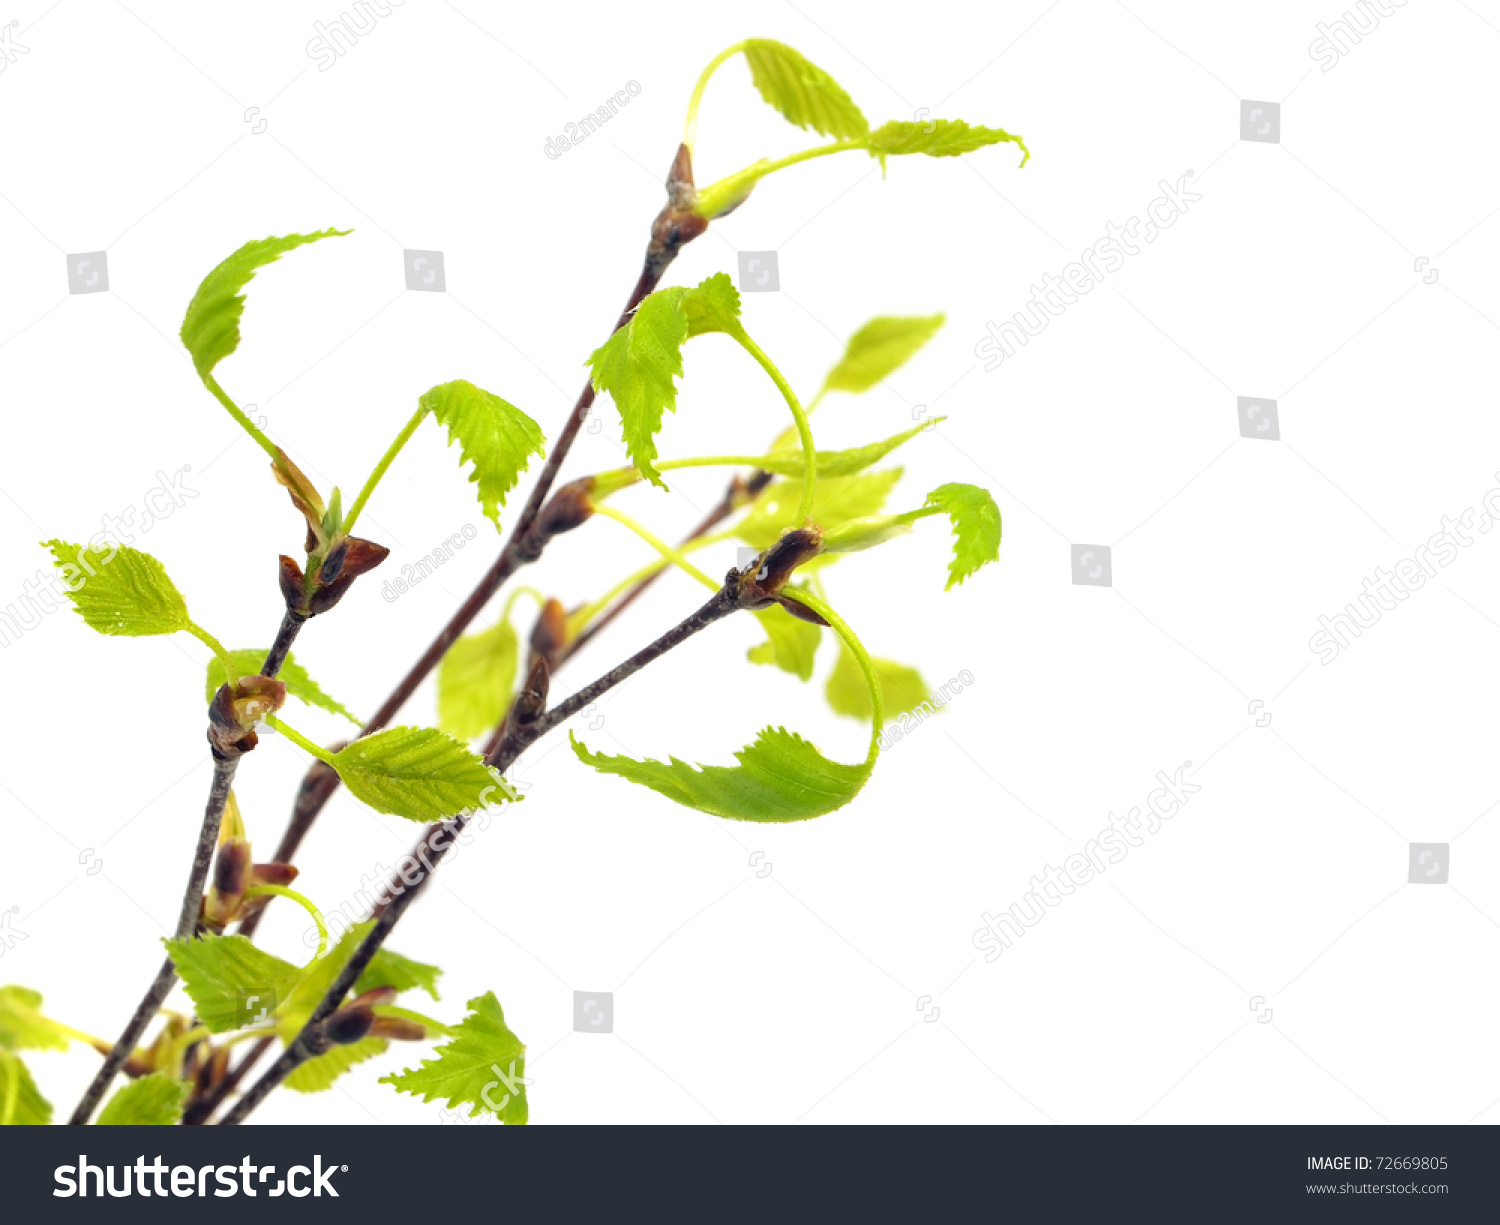 birch tree branch young leaves on stock photo 72669805 shutterstock